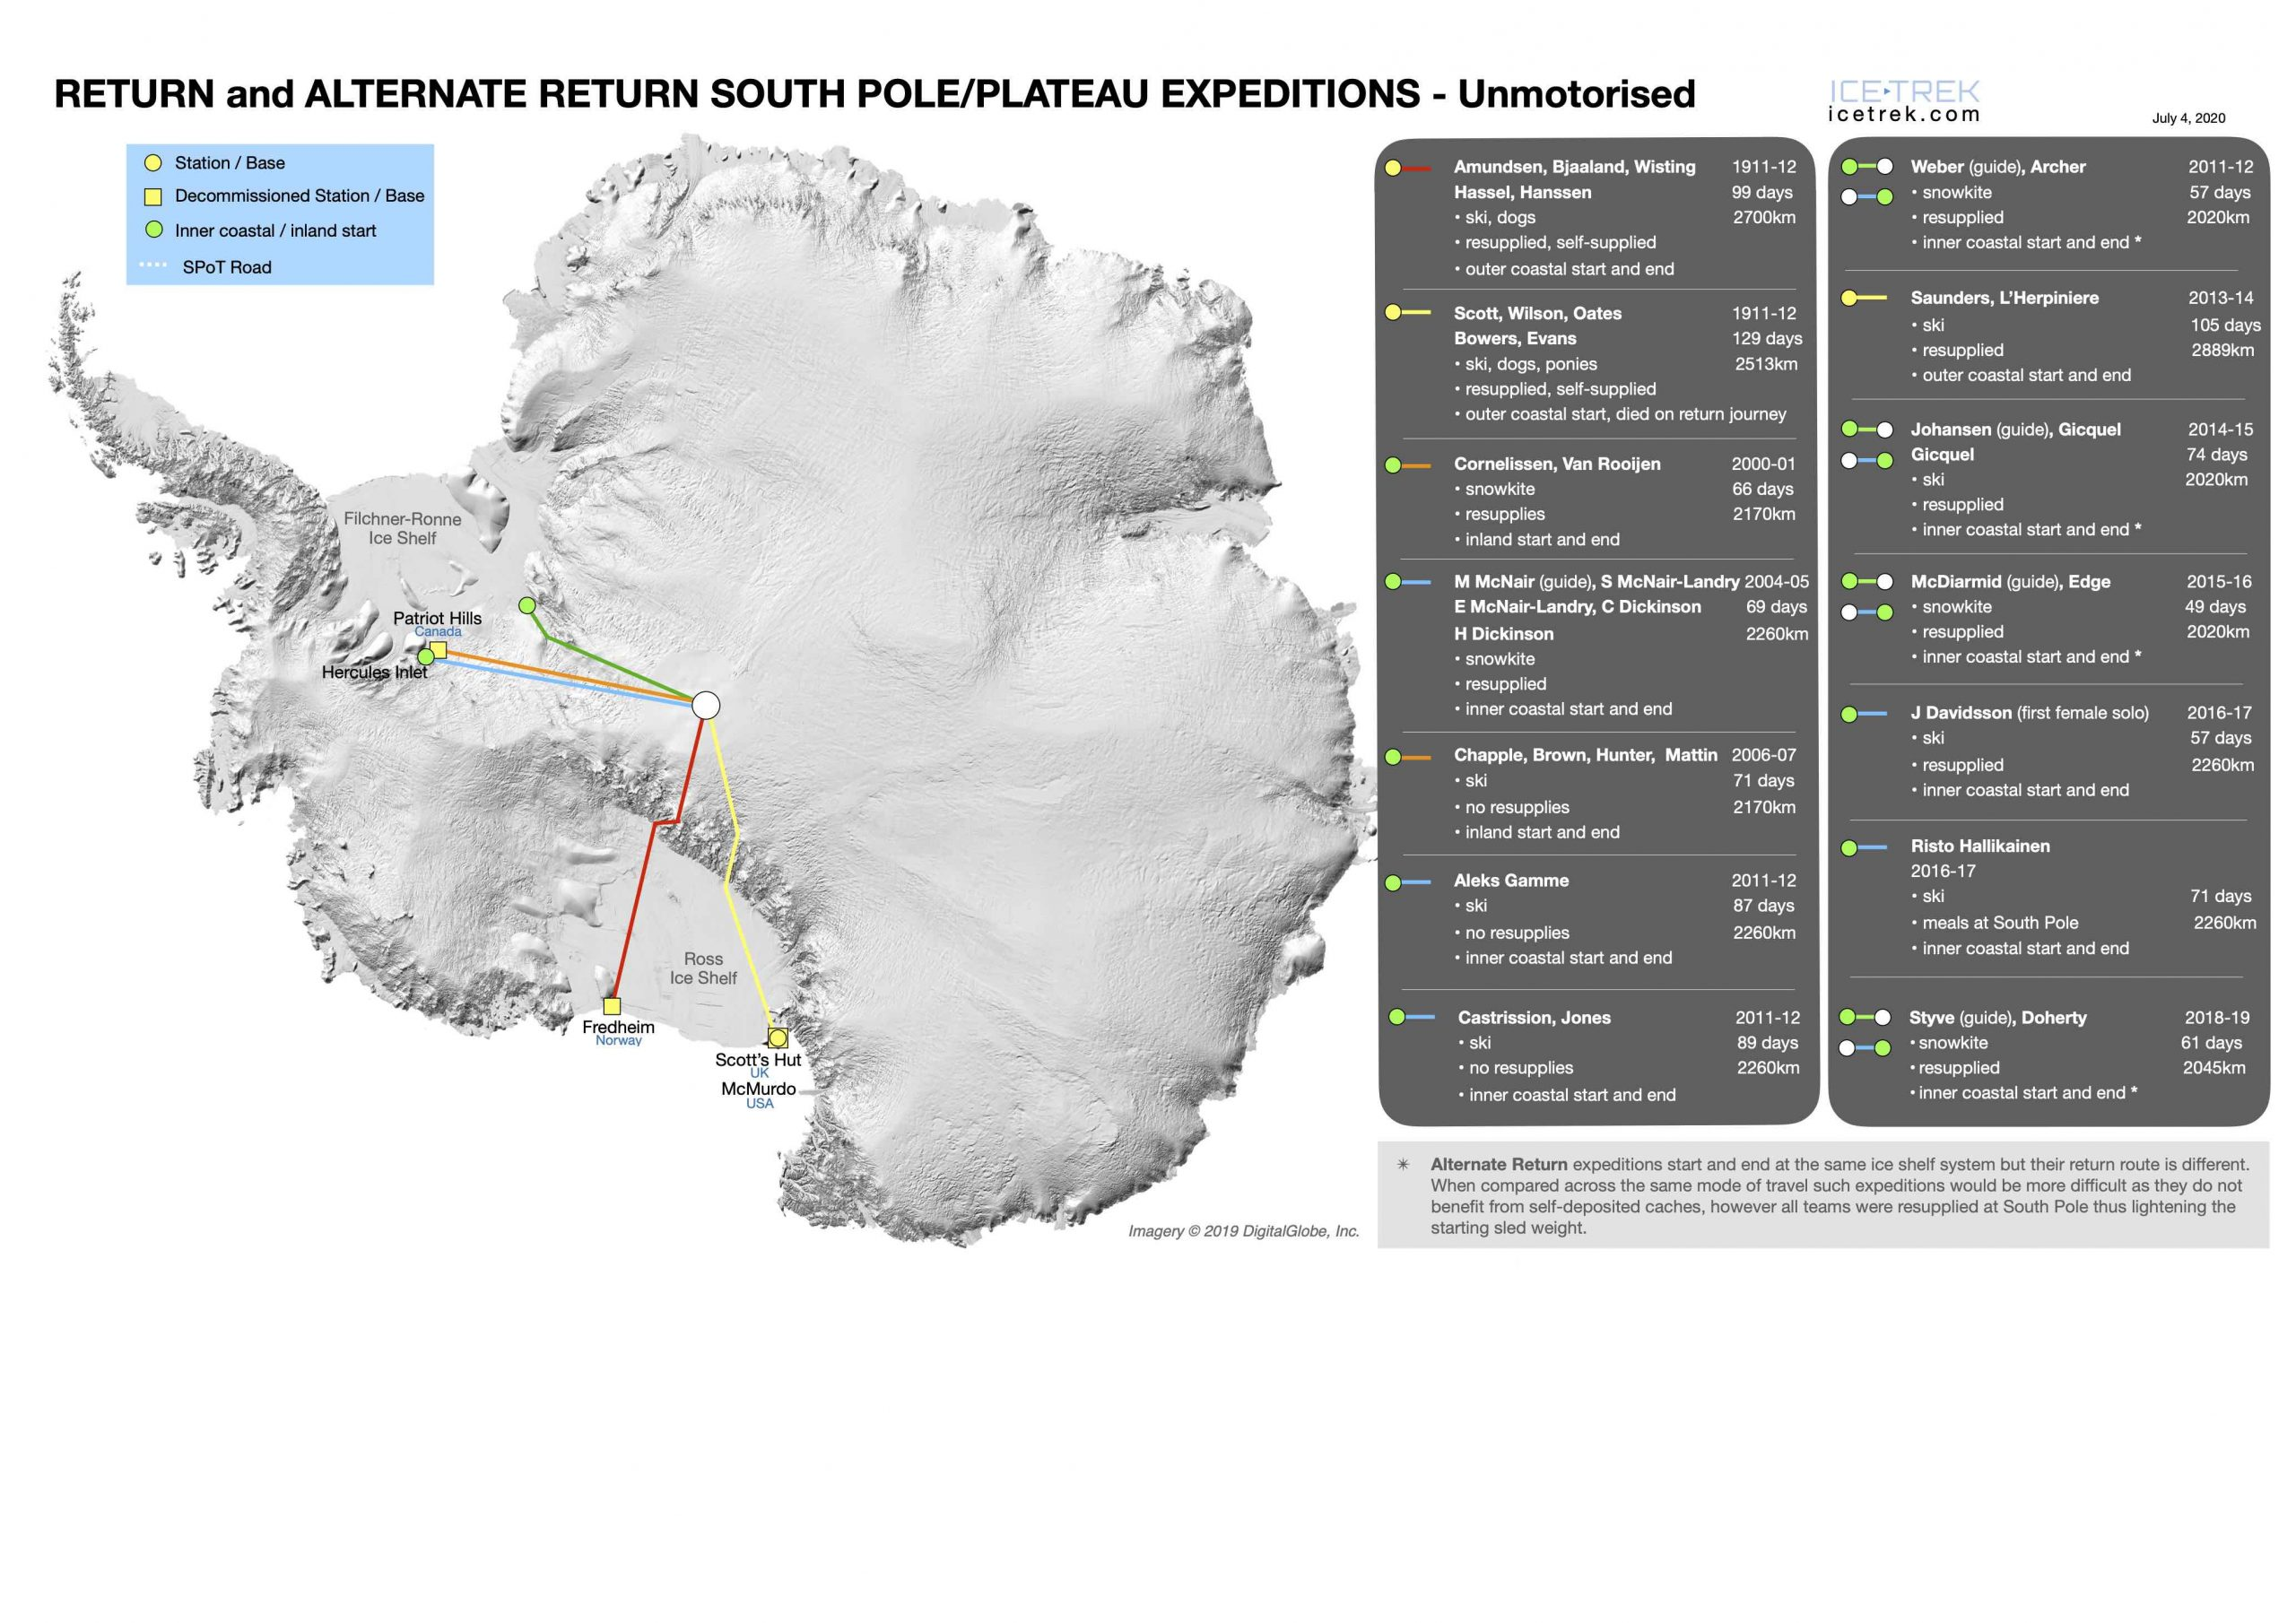 Abb. 28 RETURN and ALTERNATE RETURN SOUTH POLE/PLATEAU EXPEDITIONS – Unmotorised, July 4, 2020